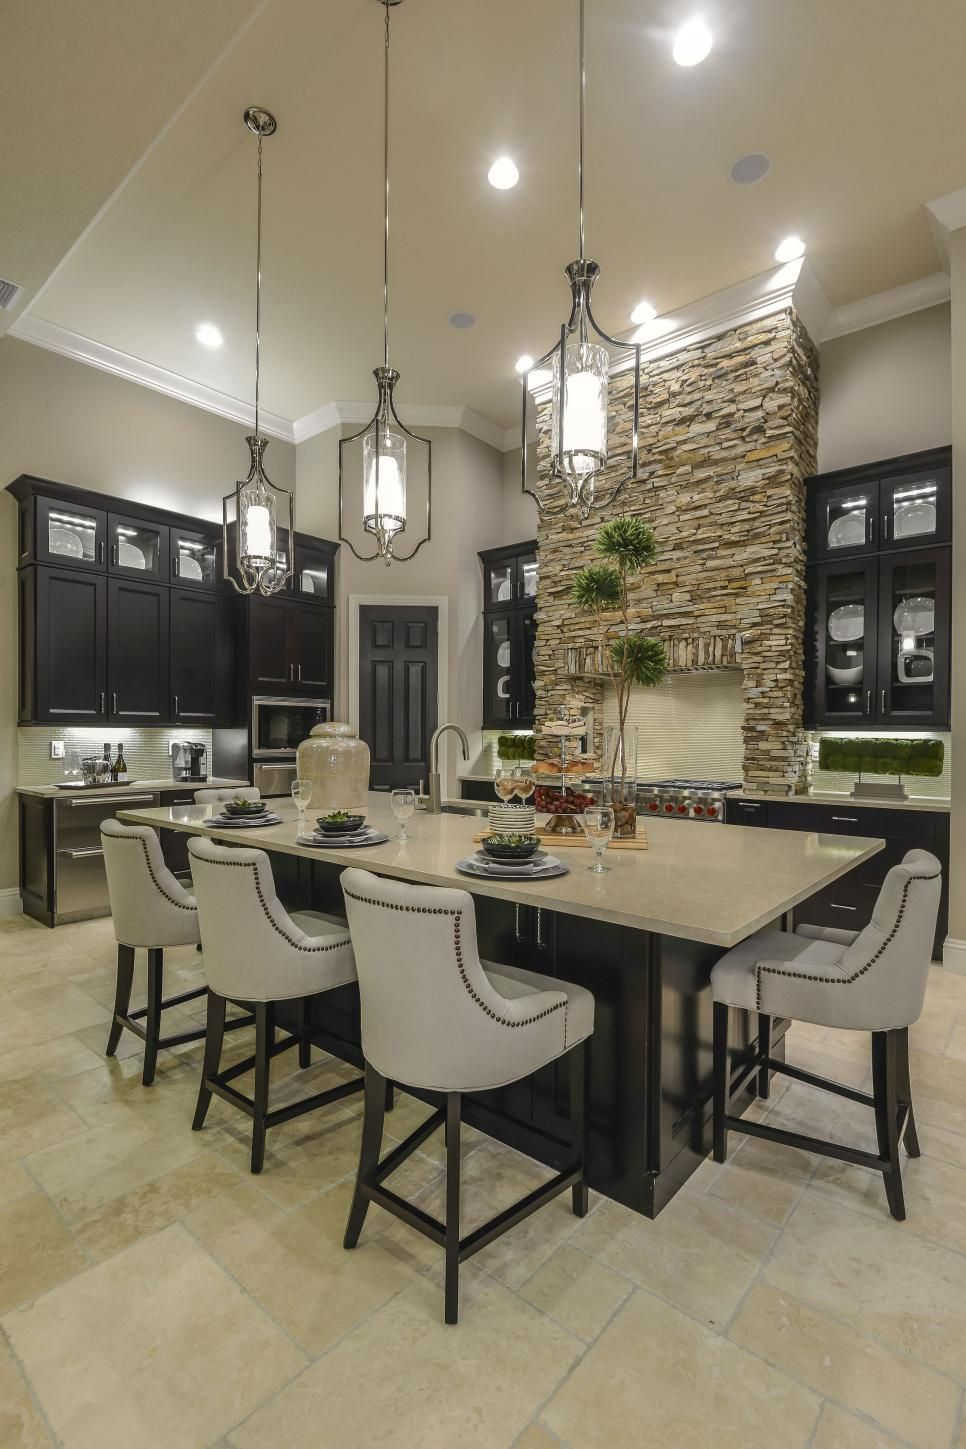 Best 25 kitchen center island ideas on pinterest blue for Kitchen center island ideas